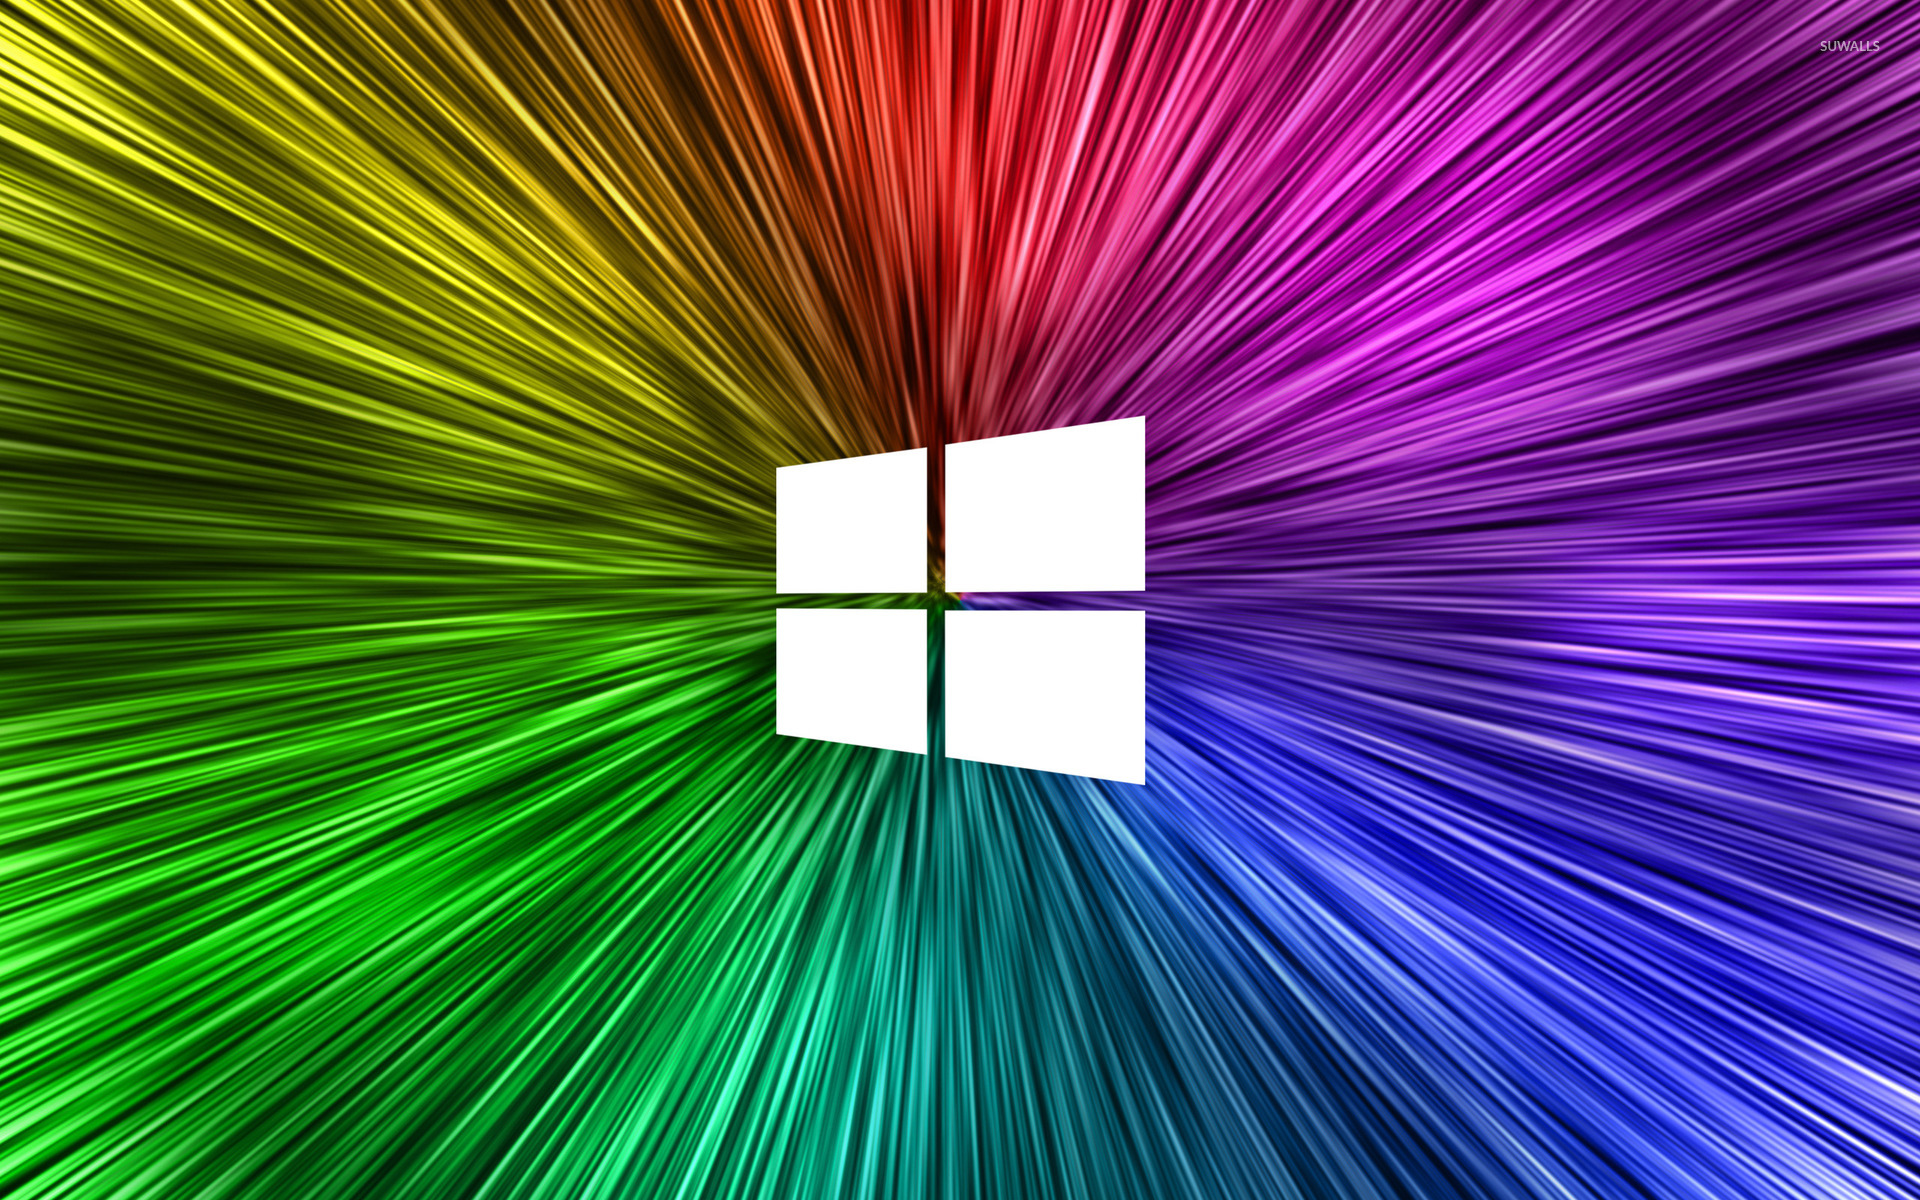 Free Computer Wallpaper Backgrounds For Fall Windows 10 Simple White Logo On Rainvow Rays Wallpaper